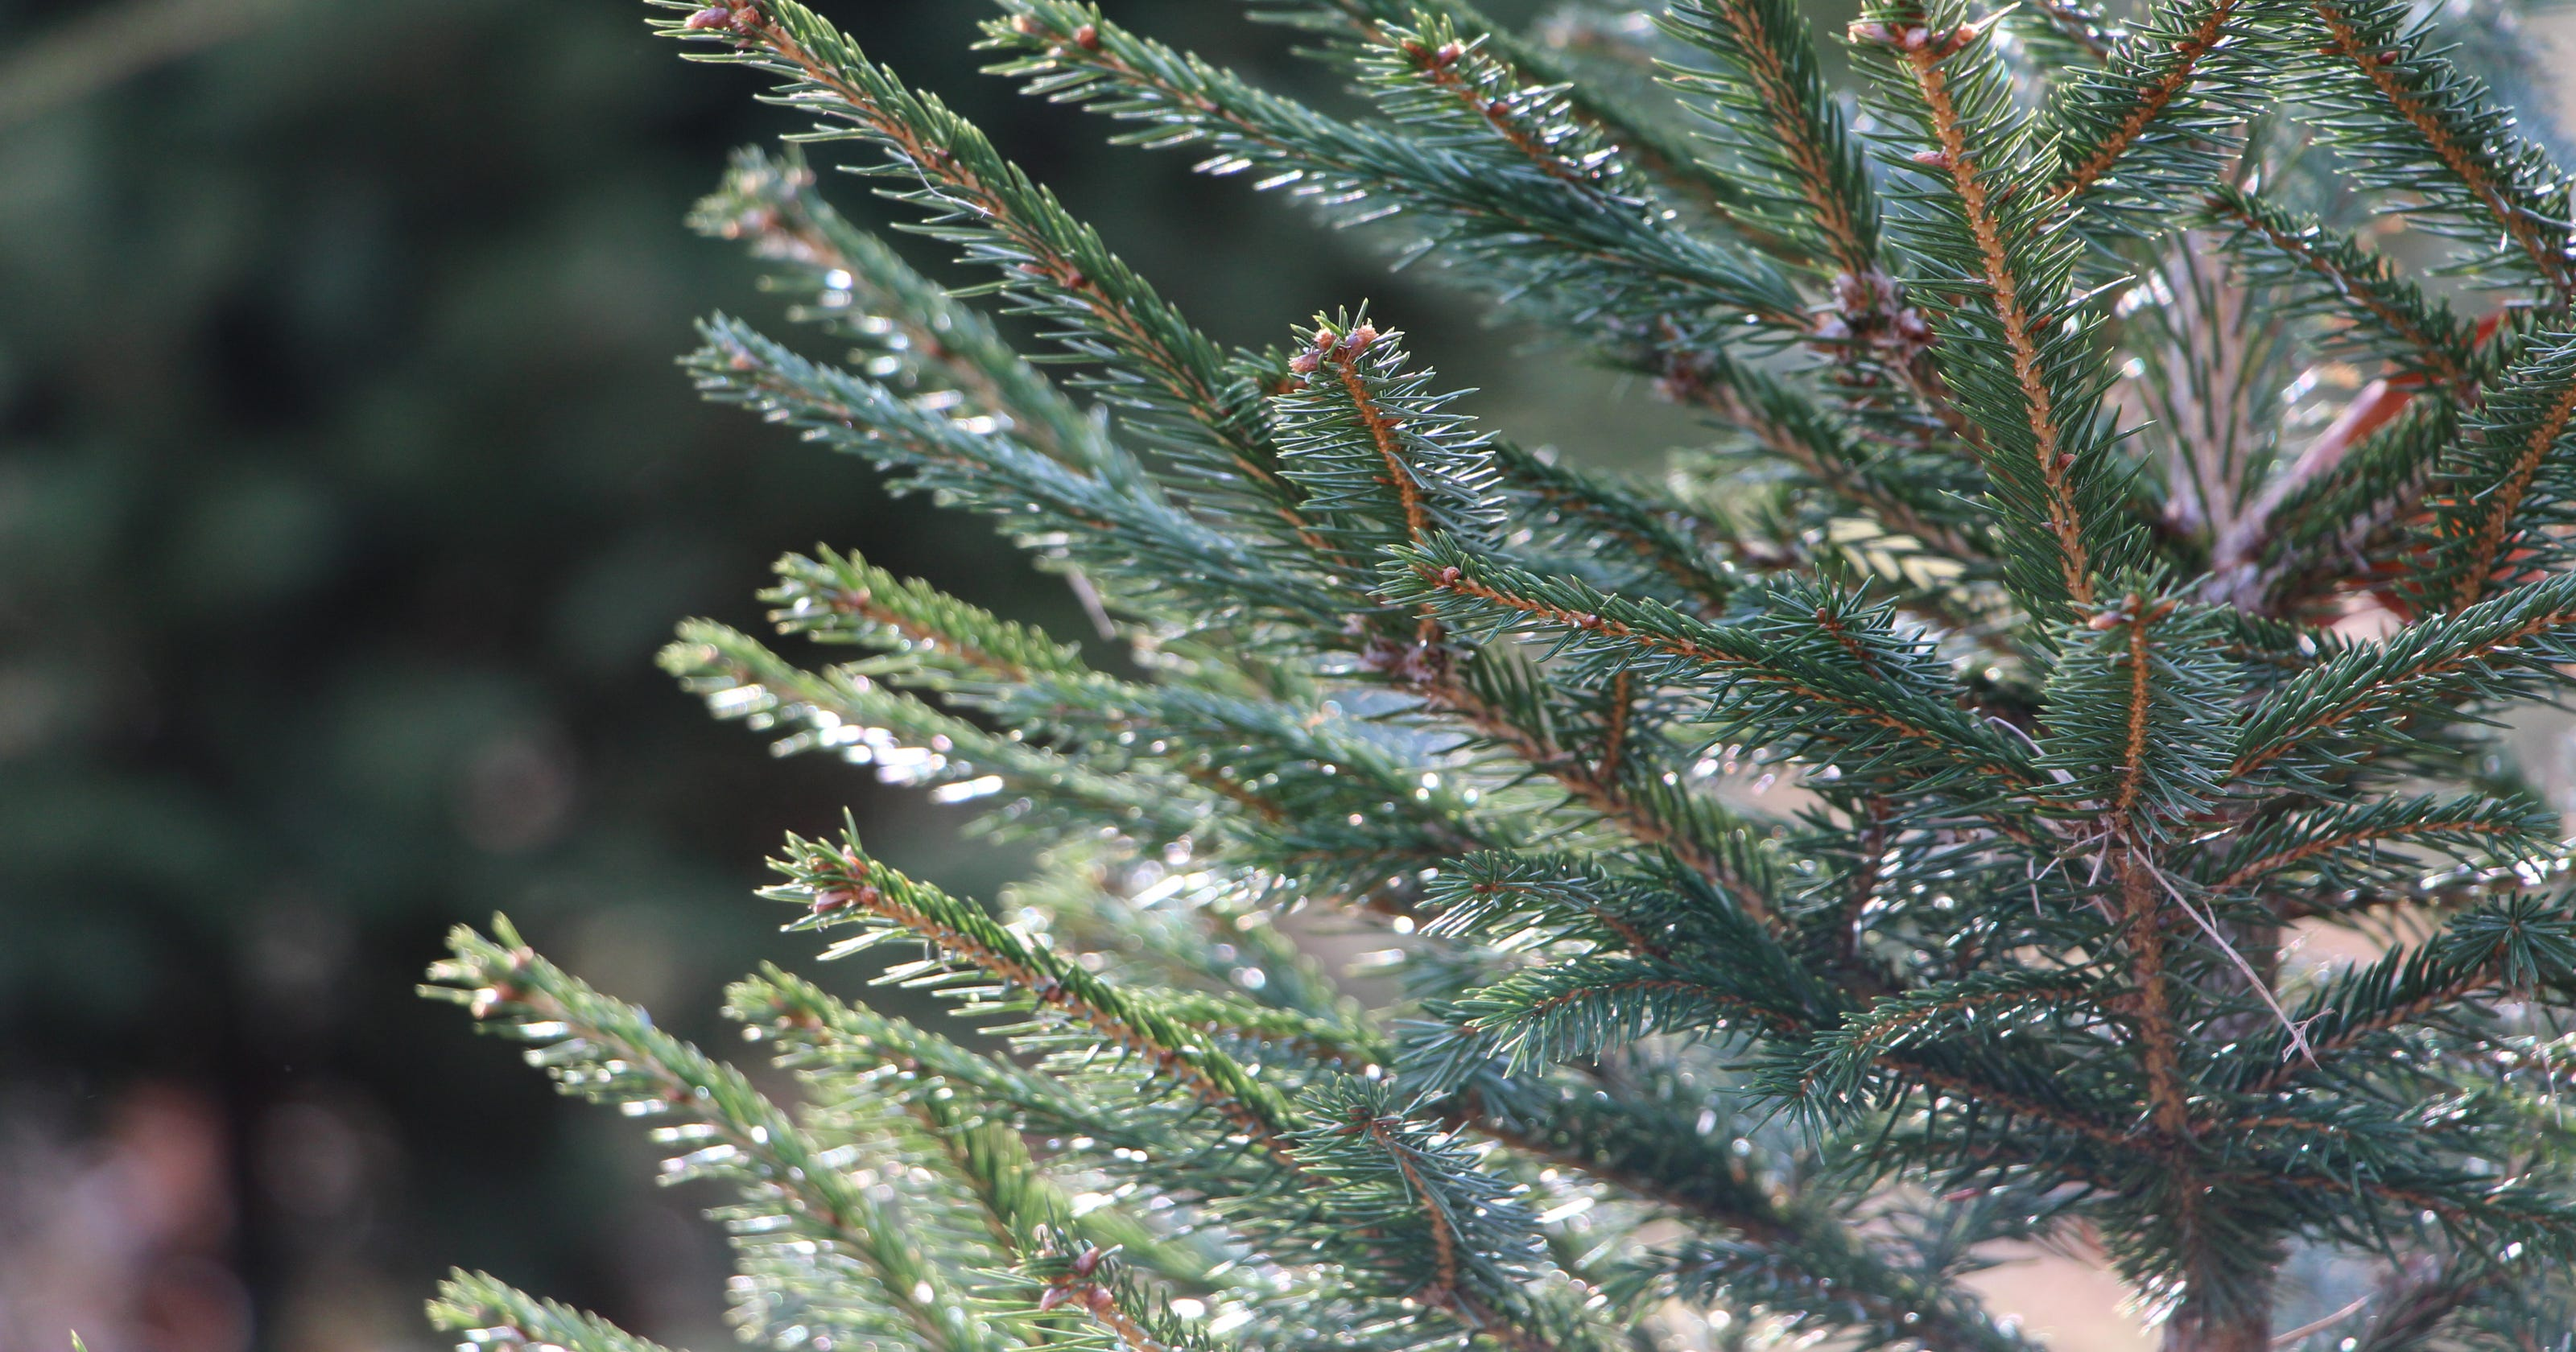 Christmas trees: Where to cut your own Christmas tree in New Jersey